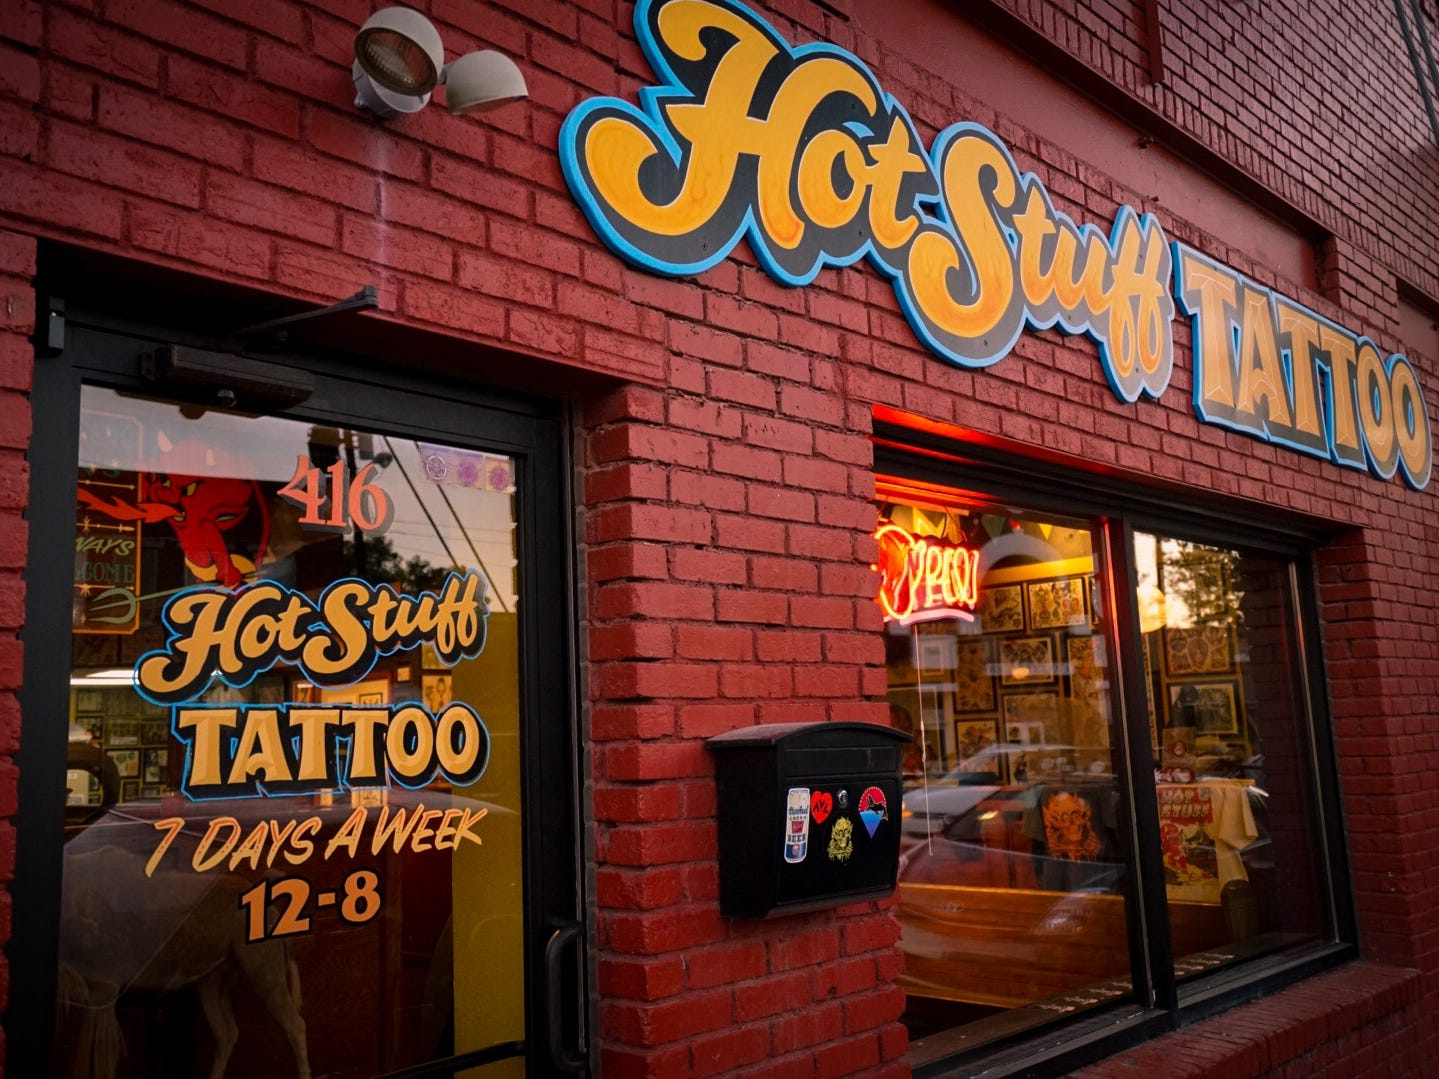 Hot Stuff Tattoo in Asheville North Carolina, consistently gets top ratings from locals, and visitors eager to bring home a souvenir from the Blue Ridge Mountains town.